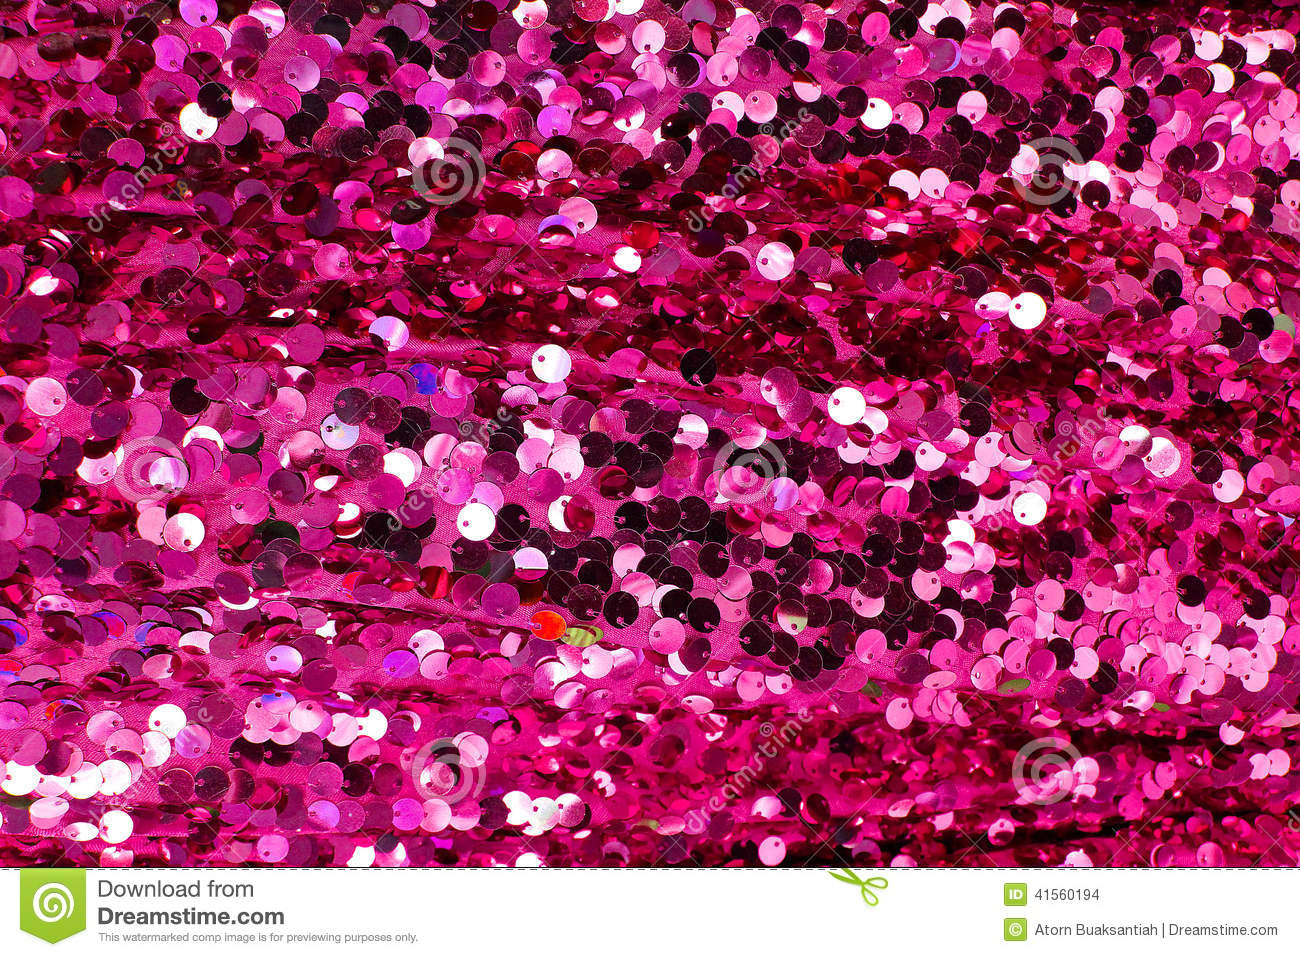 Cute Christmas Wallpaper Rose Gold Pink Glitter Texture Background Stock Photo Image Of